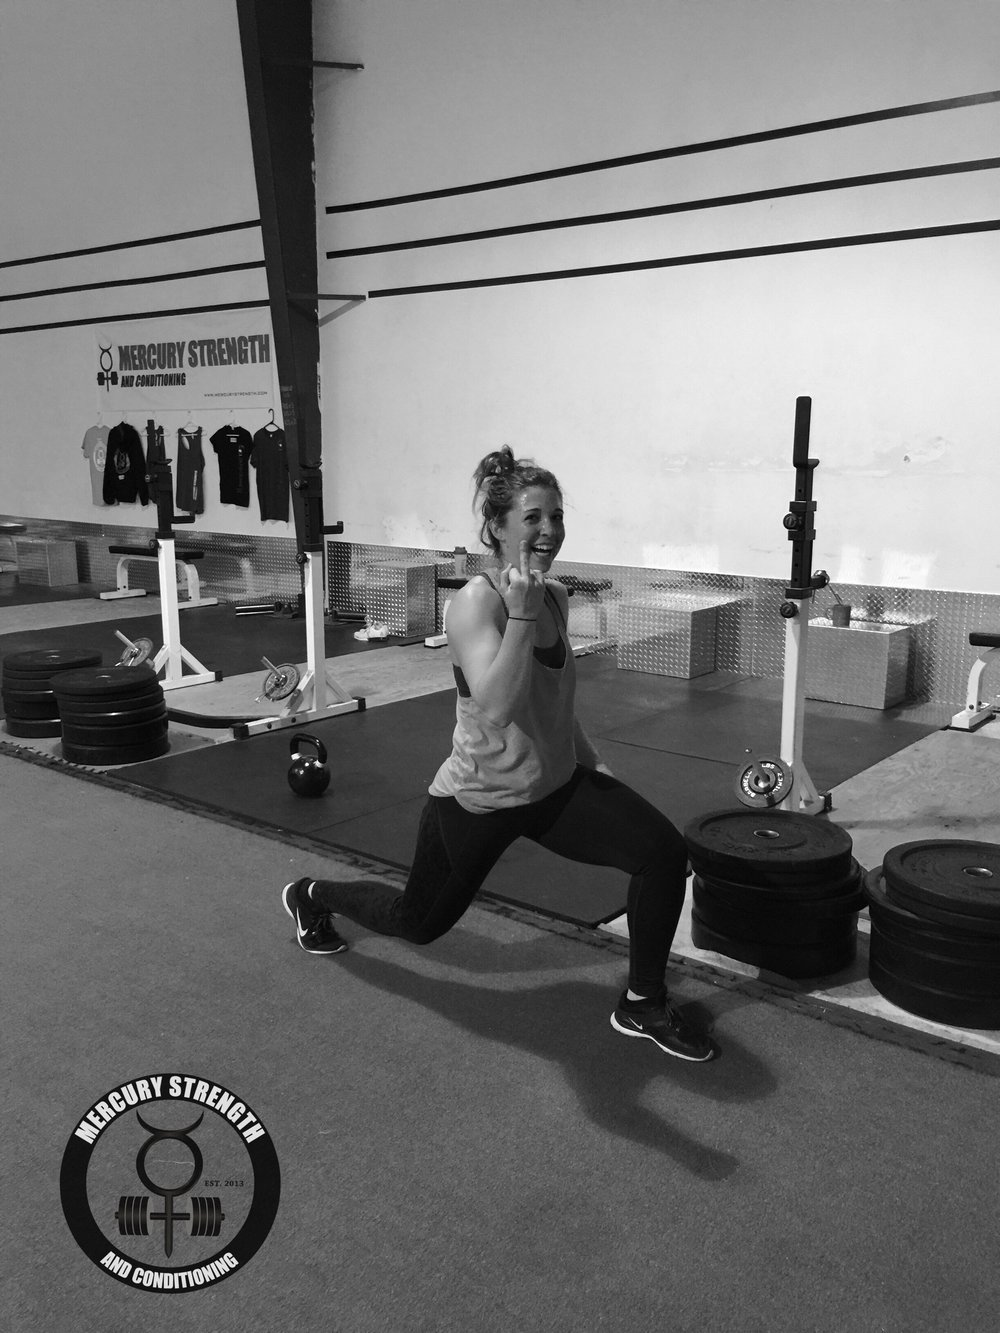 Michele expressing her gratitude for being able to do lunges.